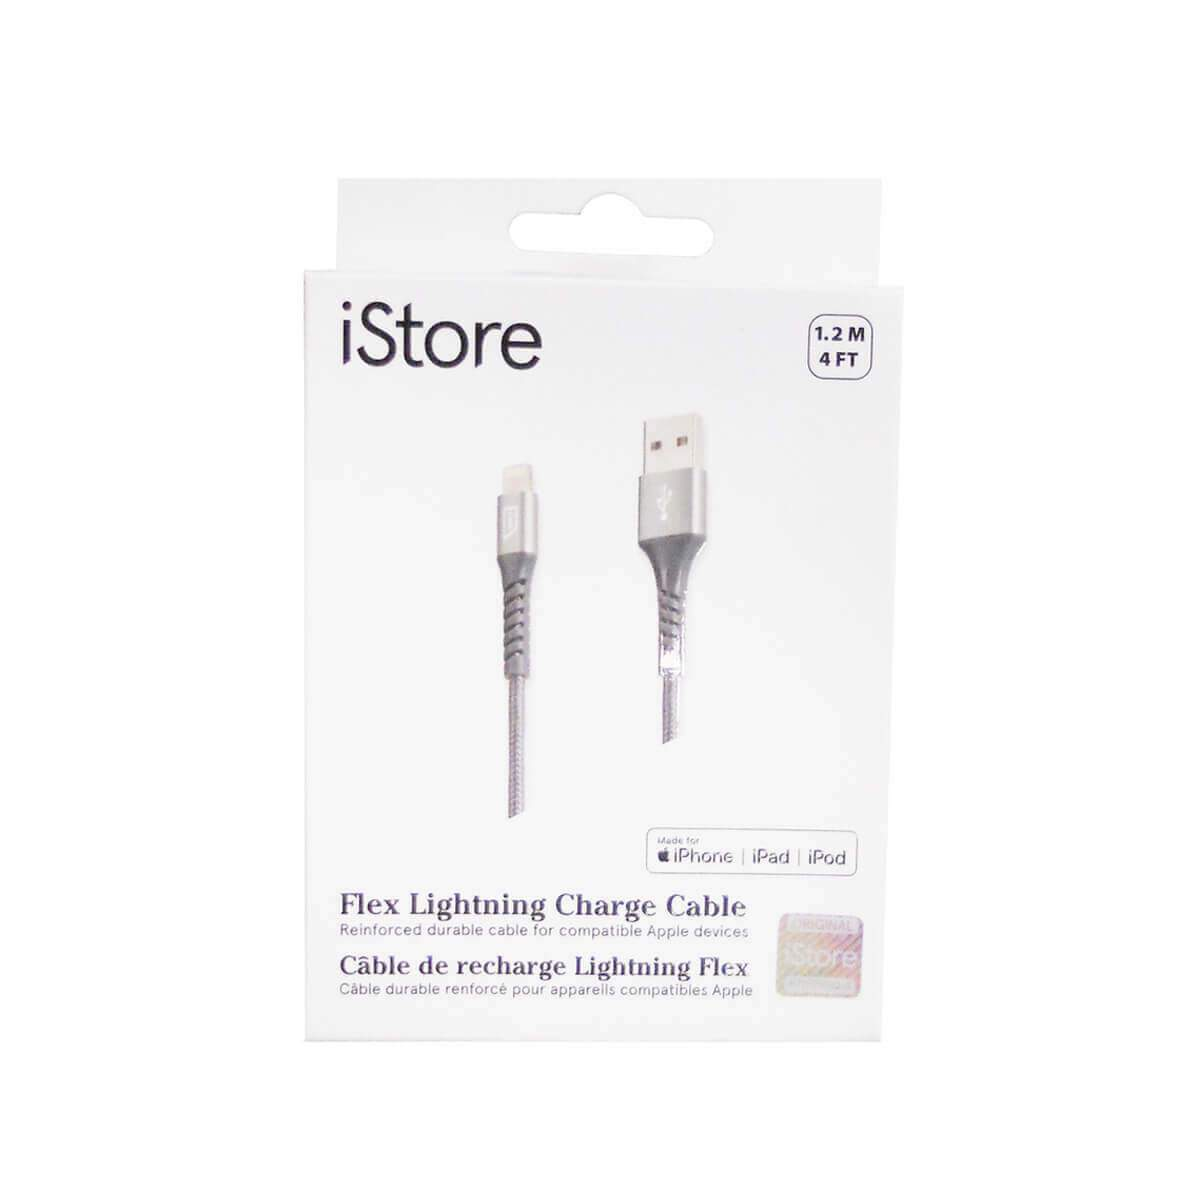 iStore Flex Lightning Charge 4ft (1.2m) Reinforced Cable